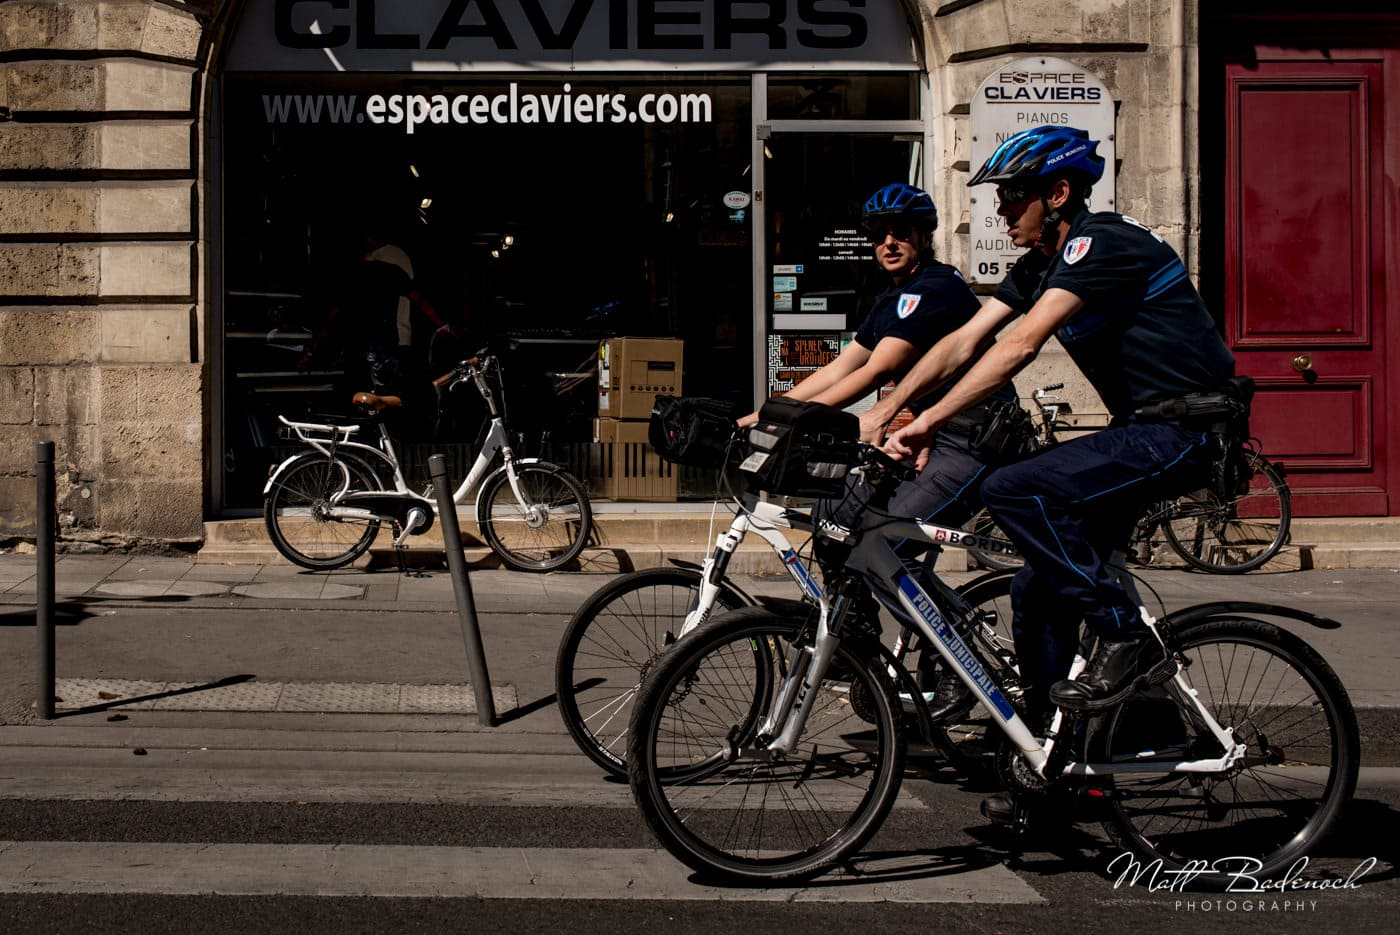 police on bikes in bordeaux | bordeaux street photography